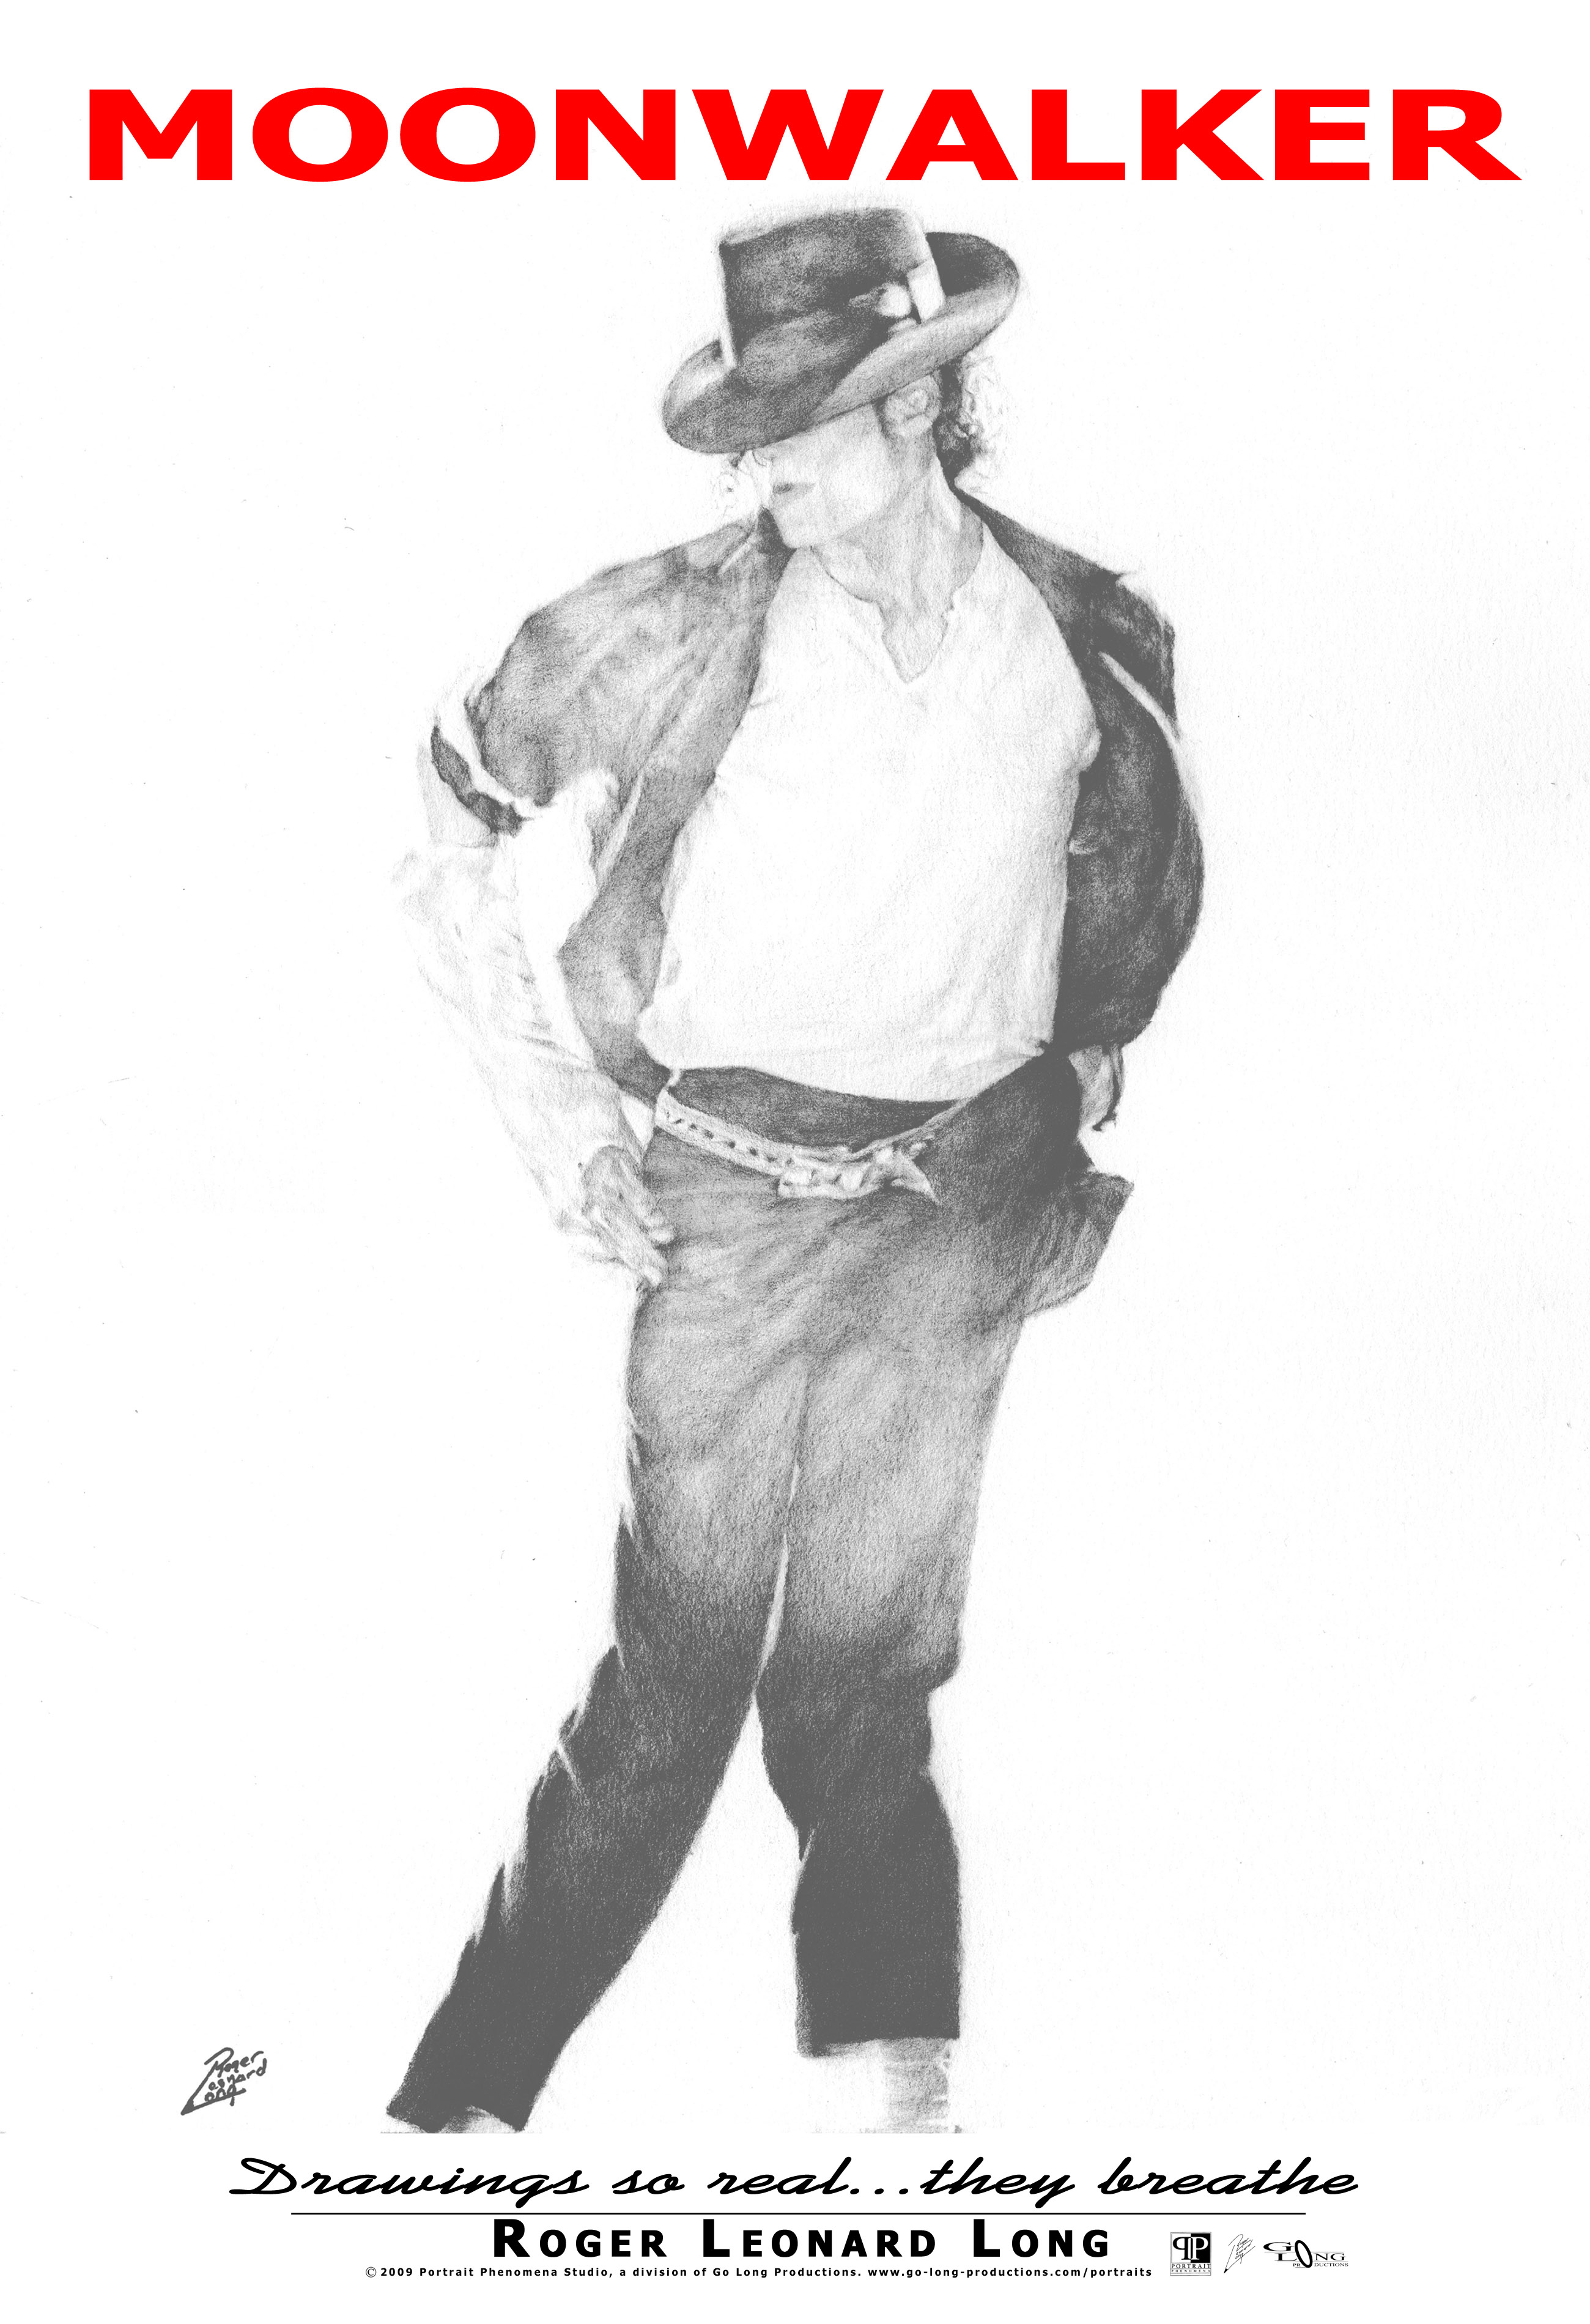 This is an exclusive original poster from Roger Leonard Long. It features his photo realistic portrait drawing of Michael Jackson. The original portrait was created in graphite. This high-quality poster captures the realism of that original work. Your poster is delivered ready for easy mounting/framing.